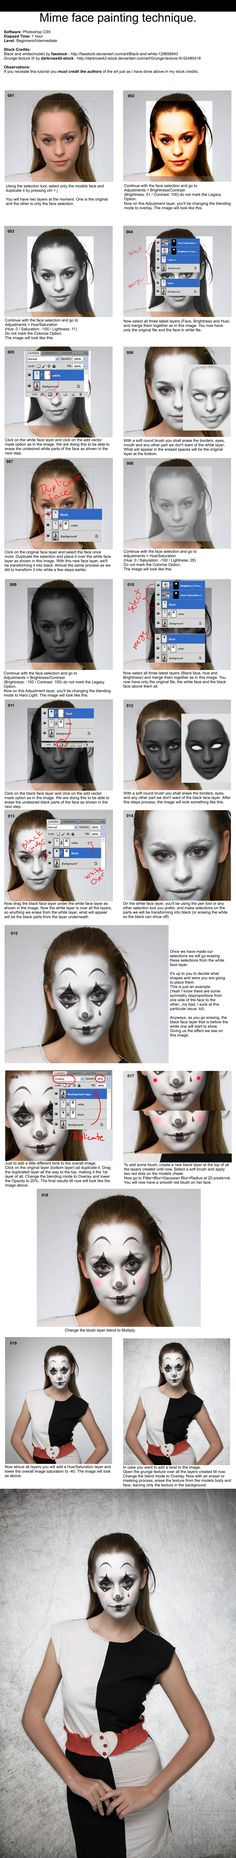 Mime Face Painting Tutorial - Photoshop